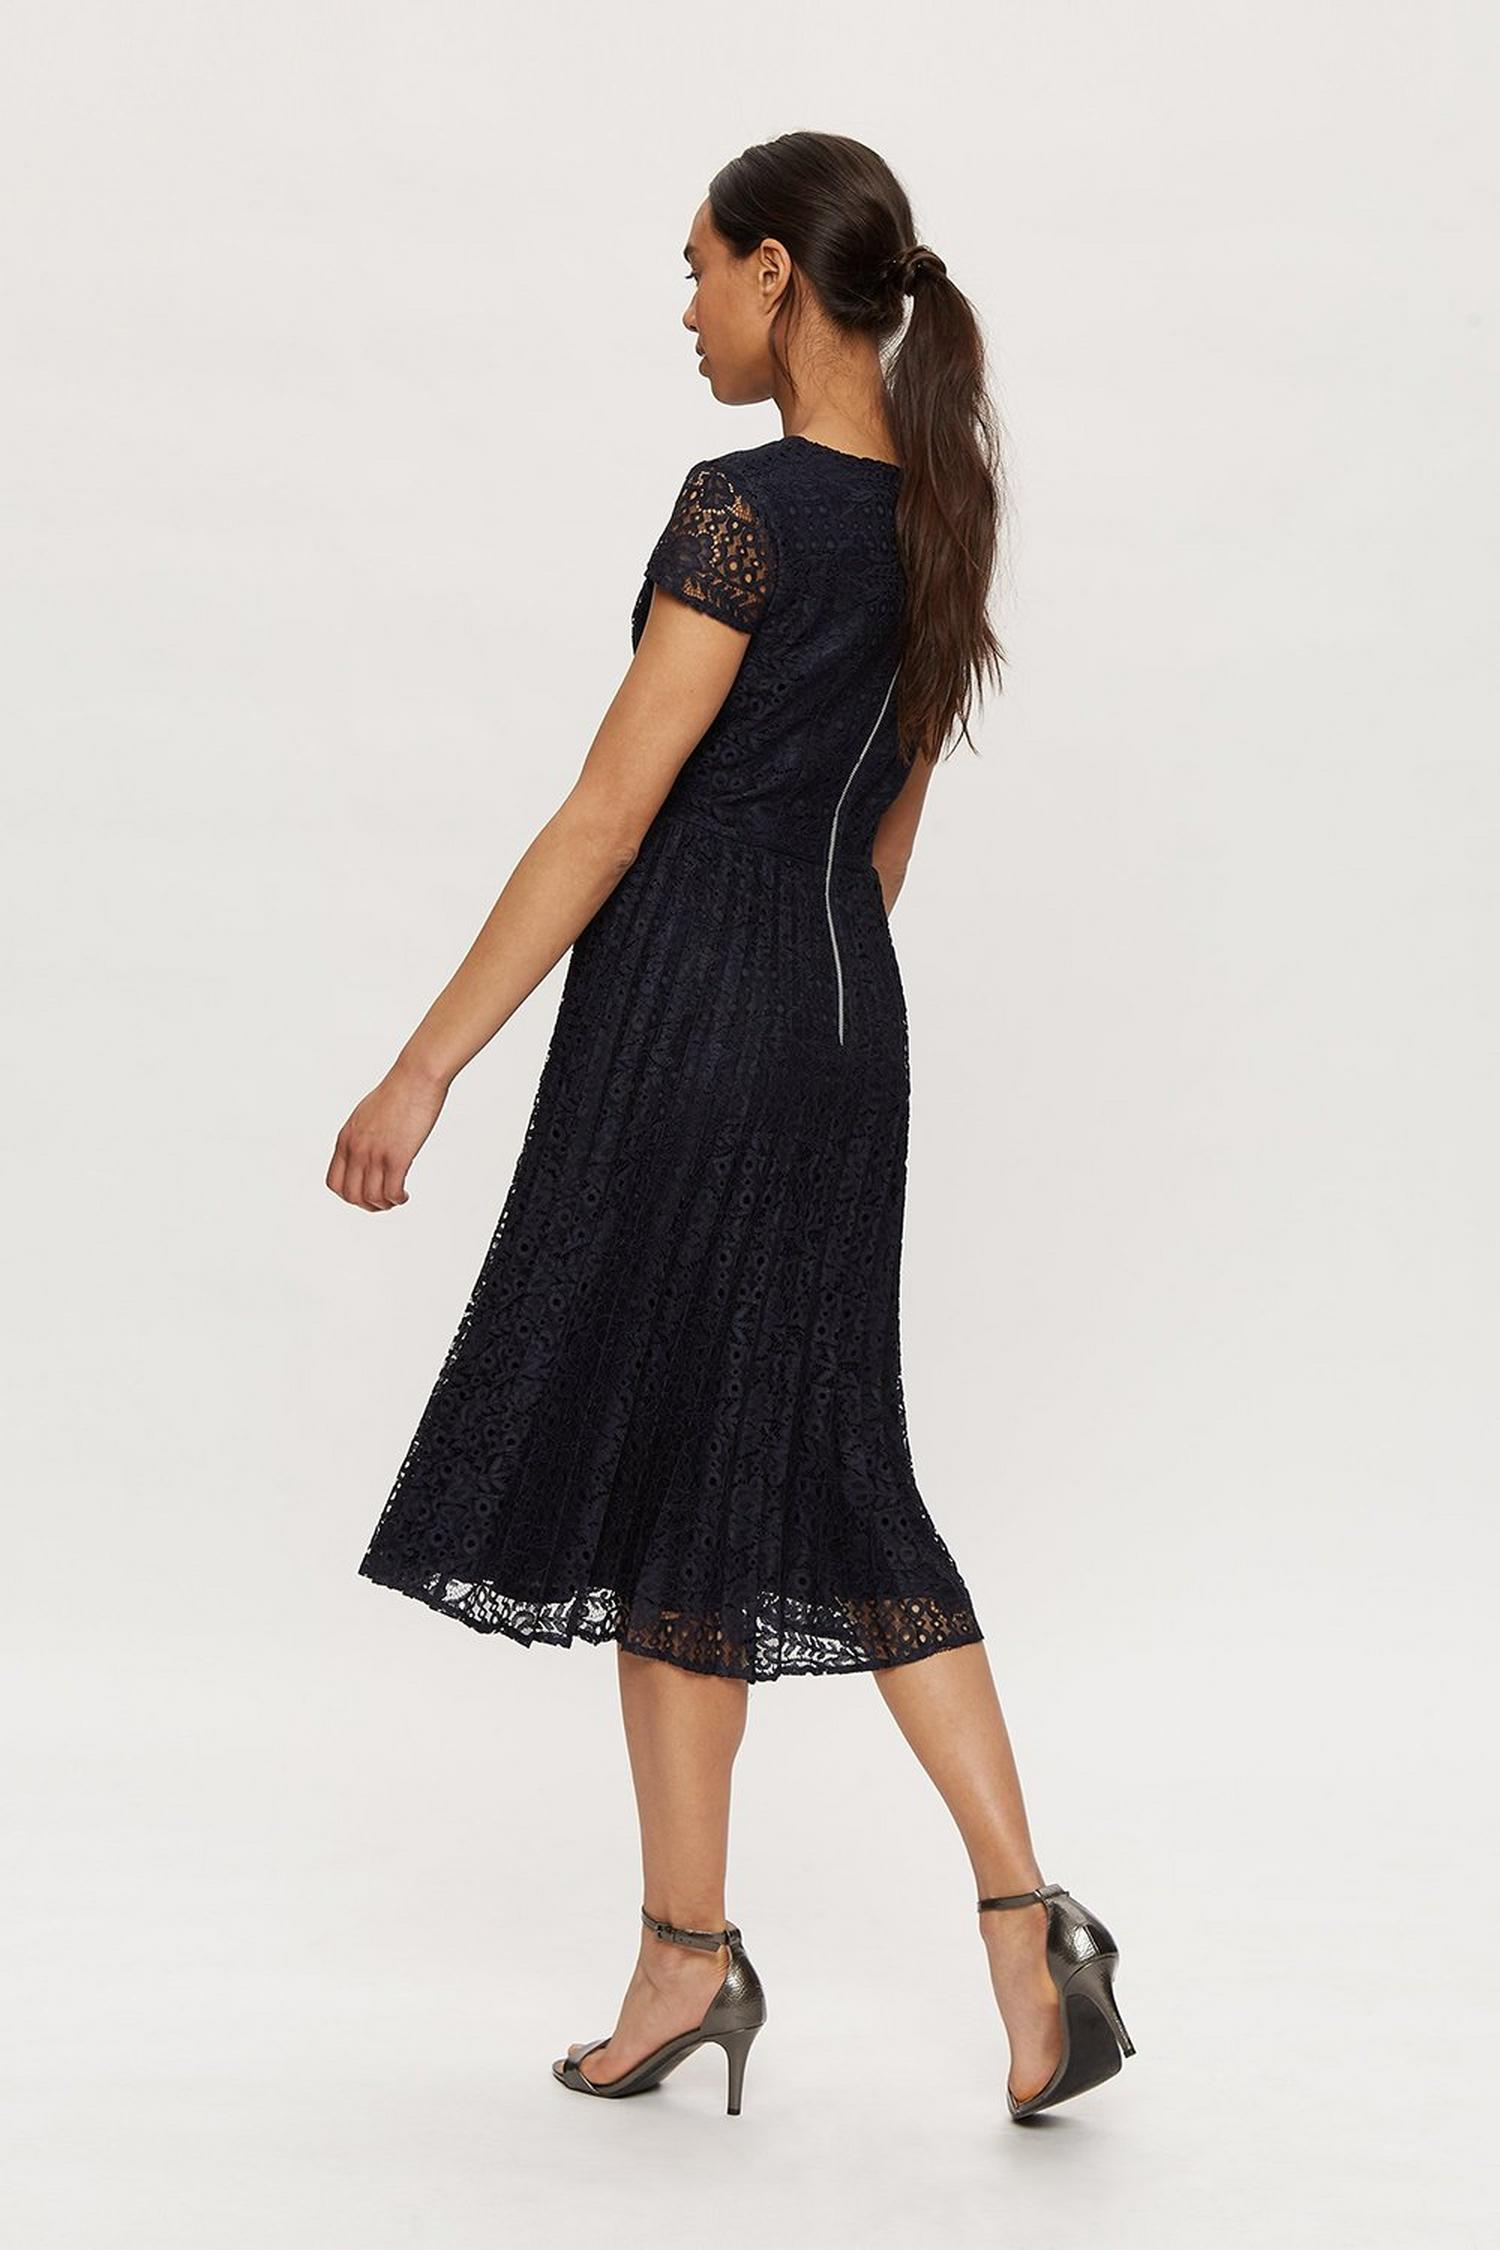 148 Navy Lace Pleated Midi Dress image number 2